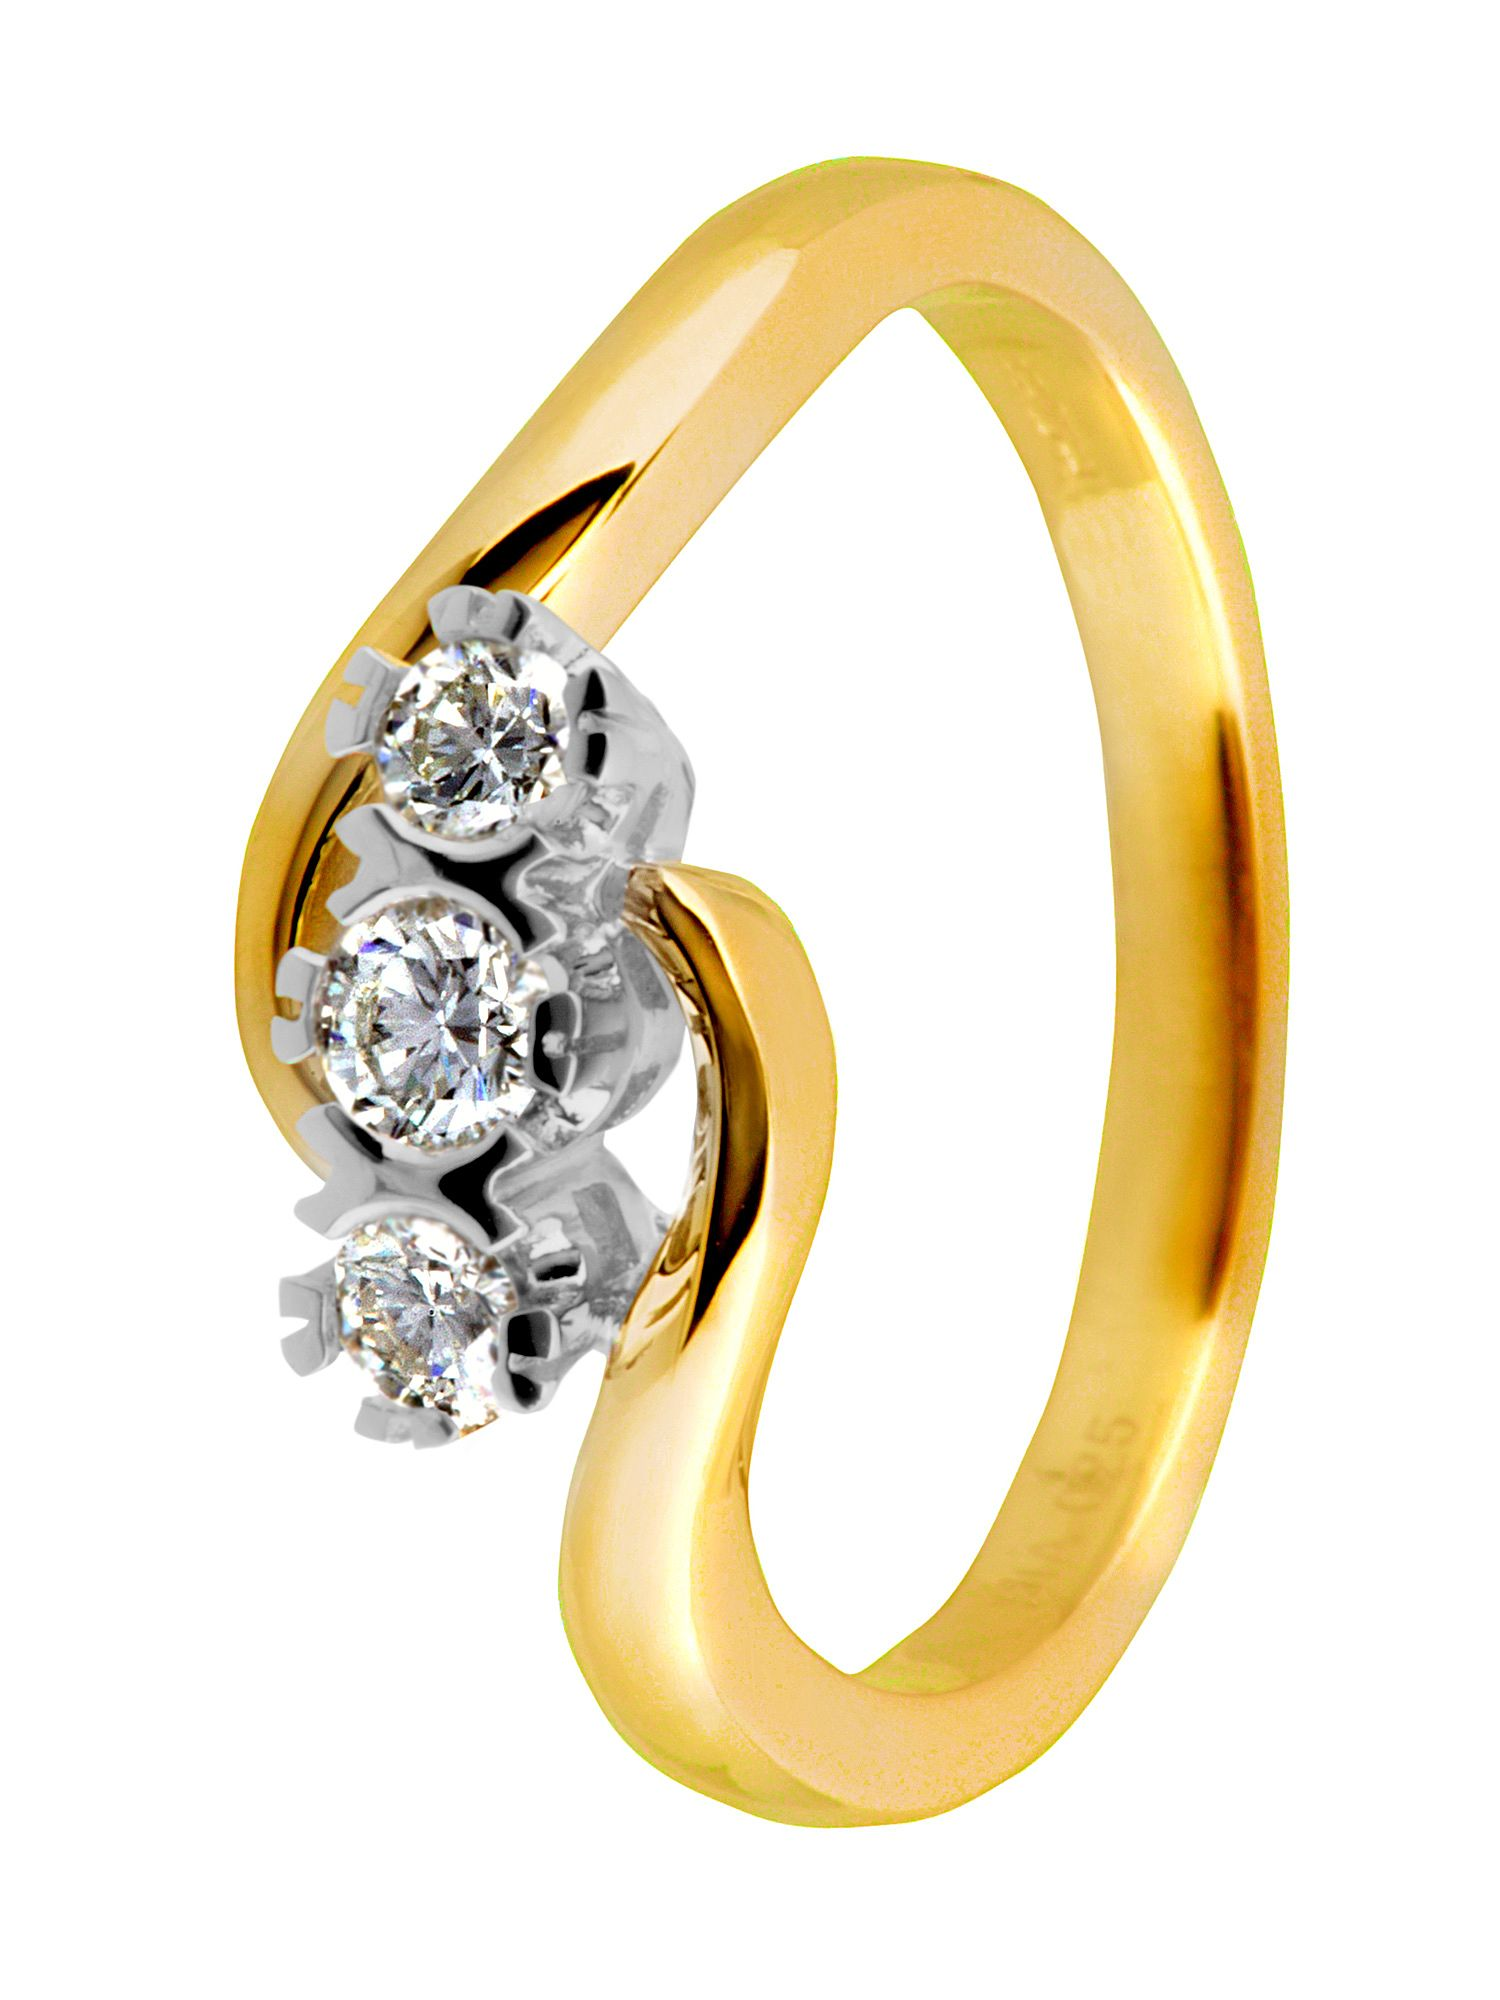 Goldsmiths 18ct yellow gold 3 stone 0.25ct diamond ring Gold product image